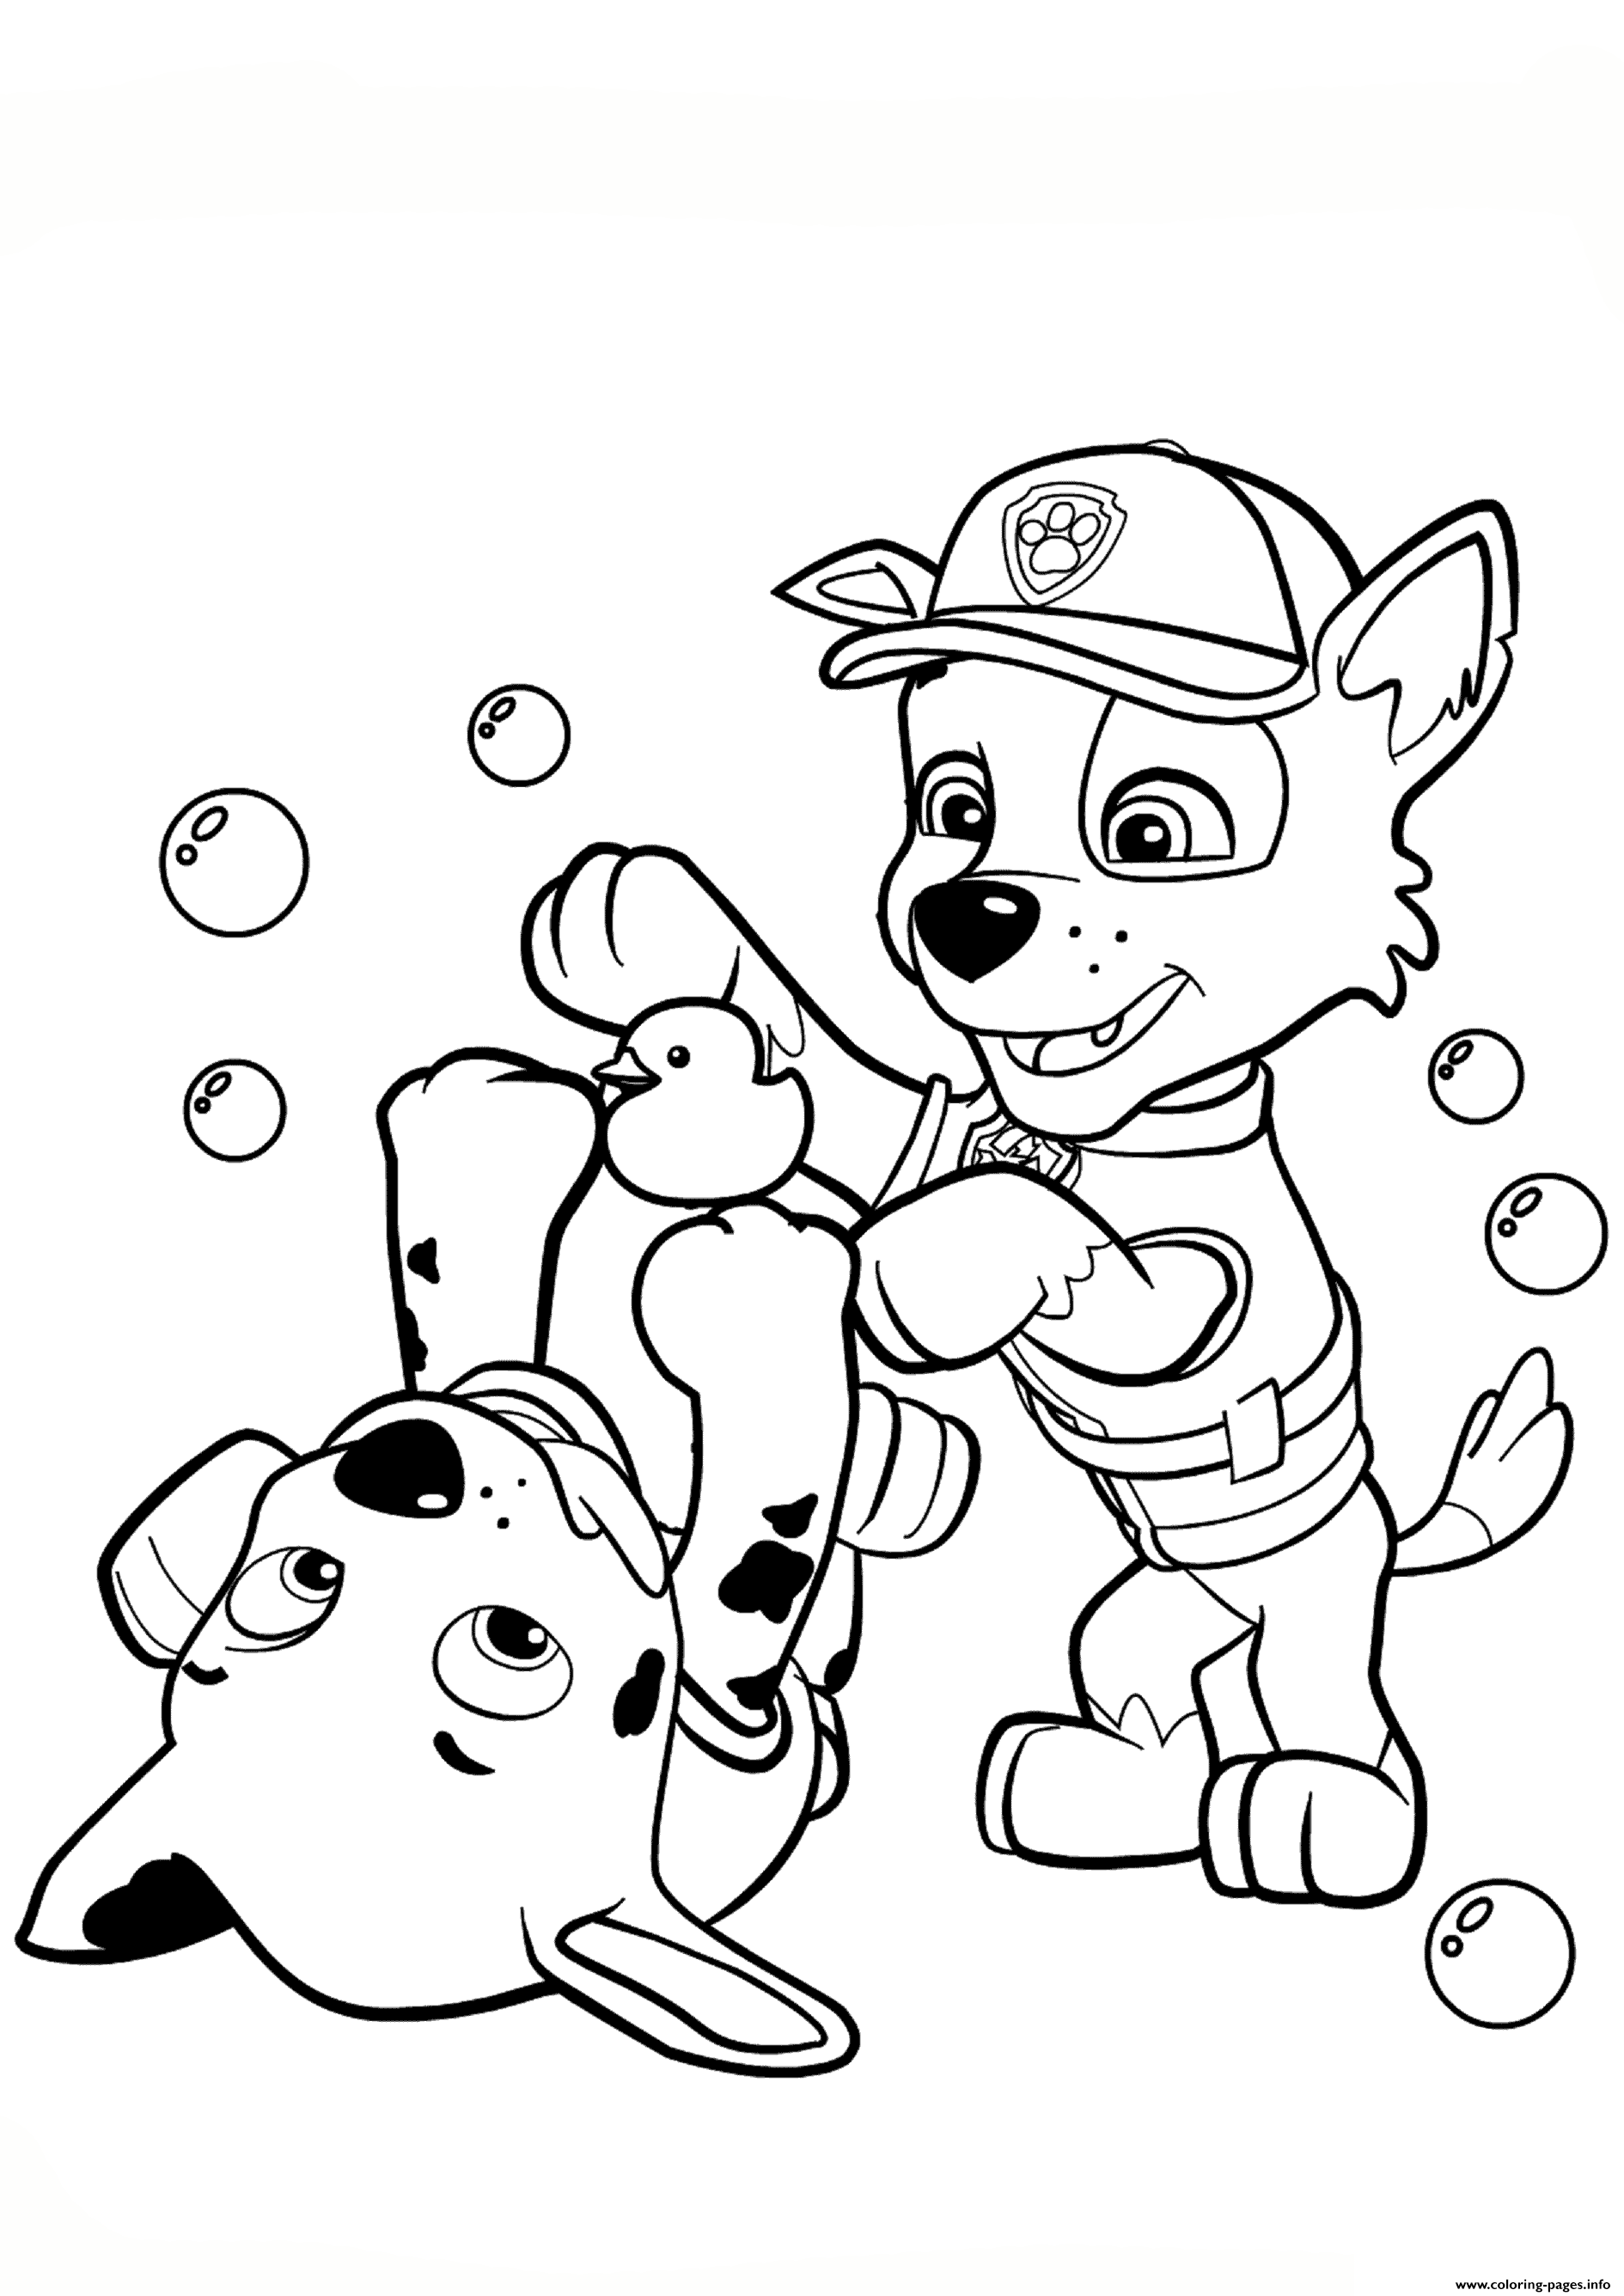 Print Paw Patrol Rocky And Marshall Coloring Pages Coloring